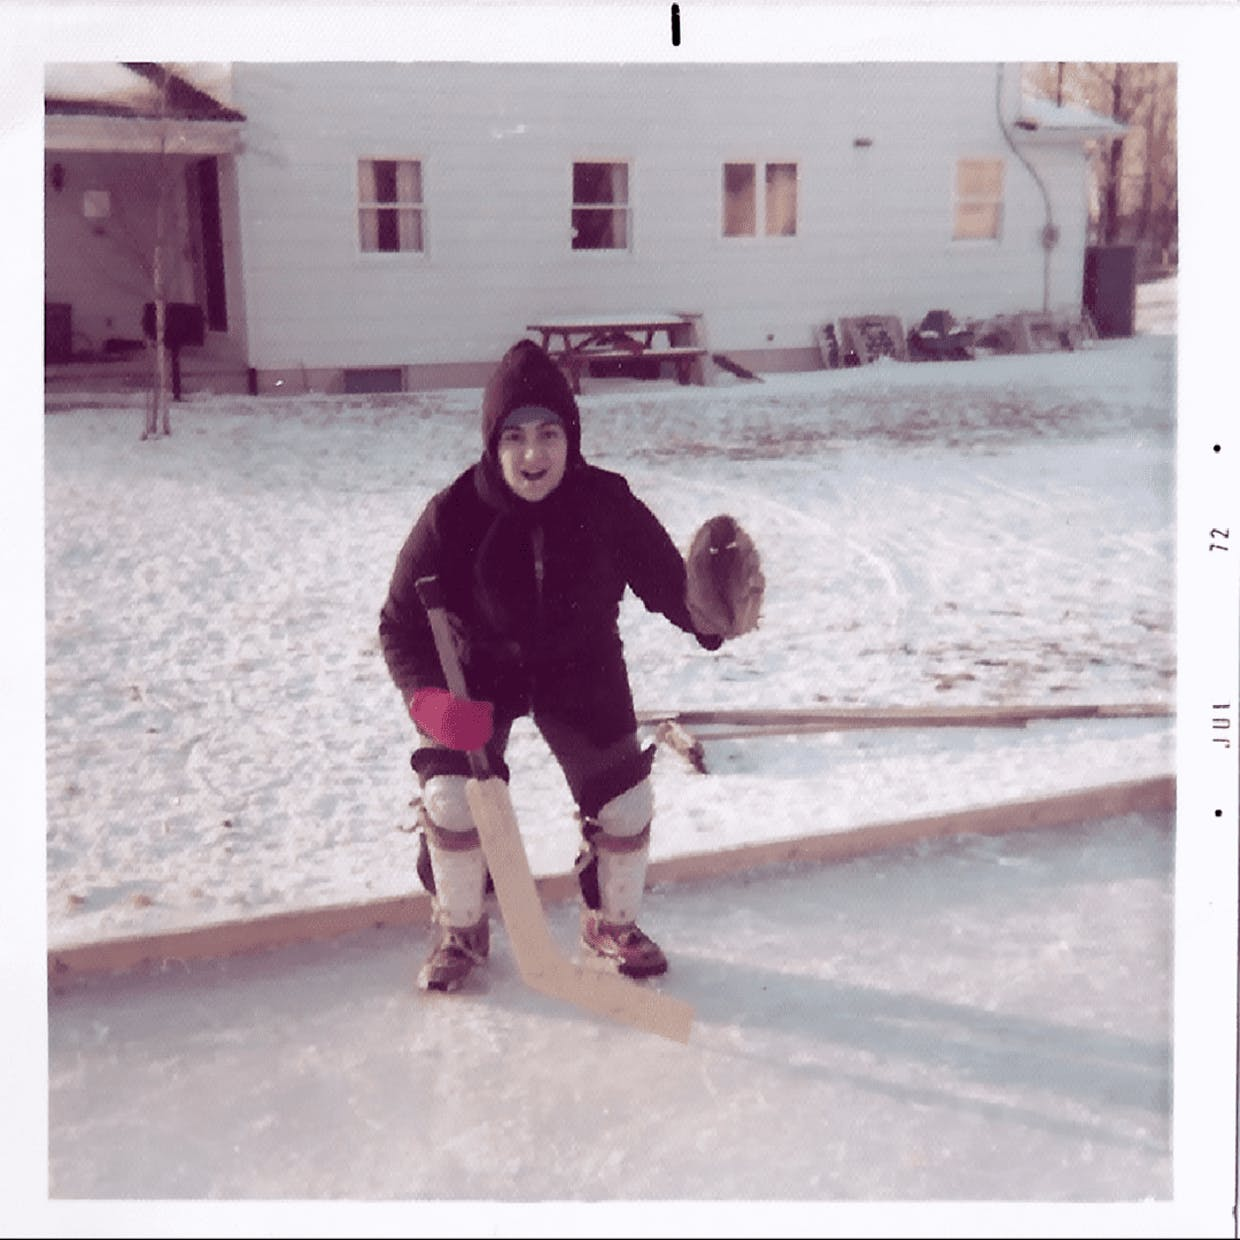 Looking back...to the winter of 1972 and the hockey rink my Dad built in our backyard. I couldn't skate so I was the designated goalie. As an All-County softball catcher and occasional first baseman, I had all the equipment I needed. The goalie stick belonged to us all. (Mom made me take off the chest protector and mask for the picture). I was the worst goalie in the history of hockey. Every shot on goal was a goal. Hockey in WNY was a religion. Watch the Buffalo Sabres a couple nights a week and Hockey Night in Canada other nights. PS NHL teams belong only in cities where you can ice skate in your backyard.